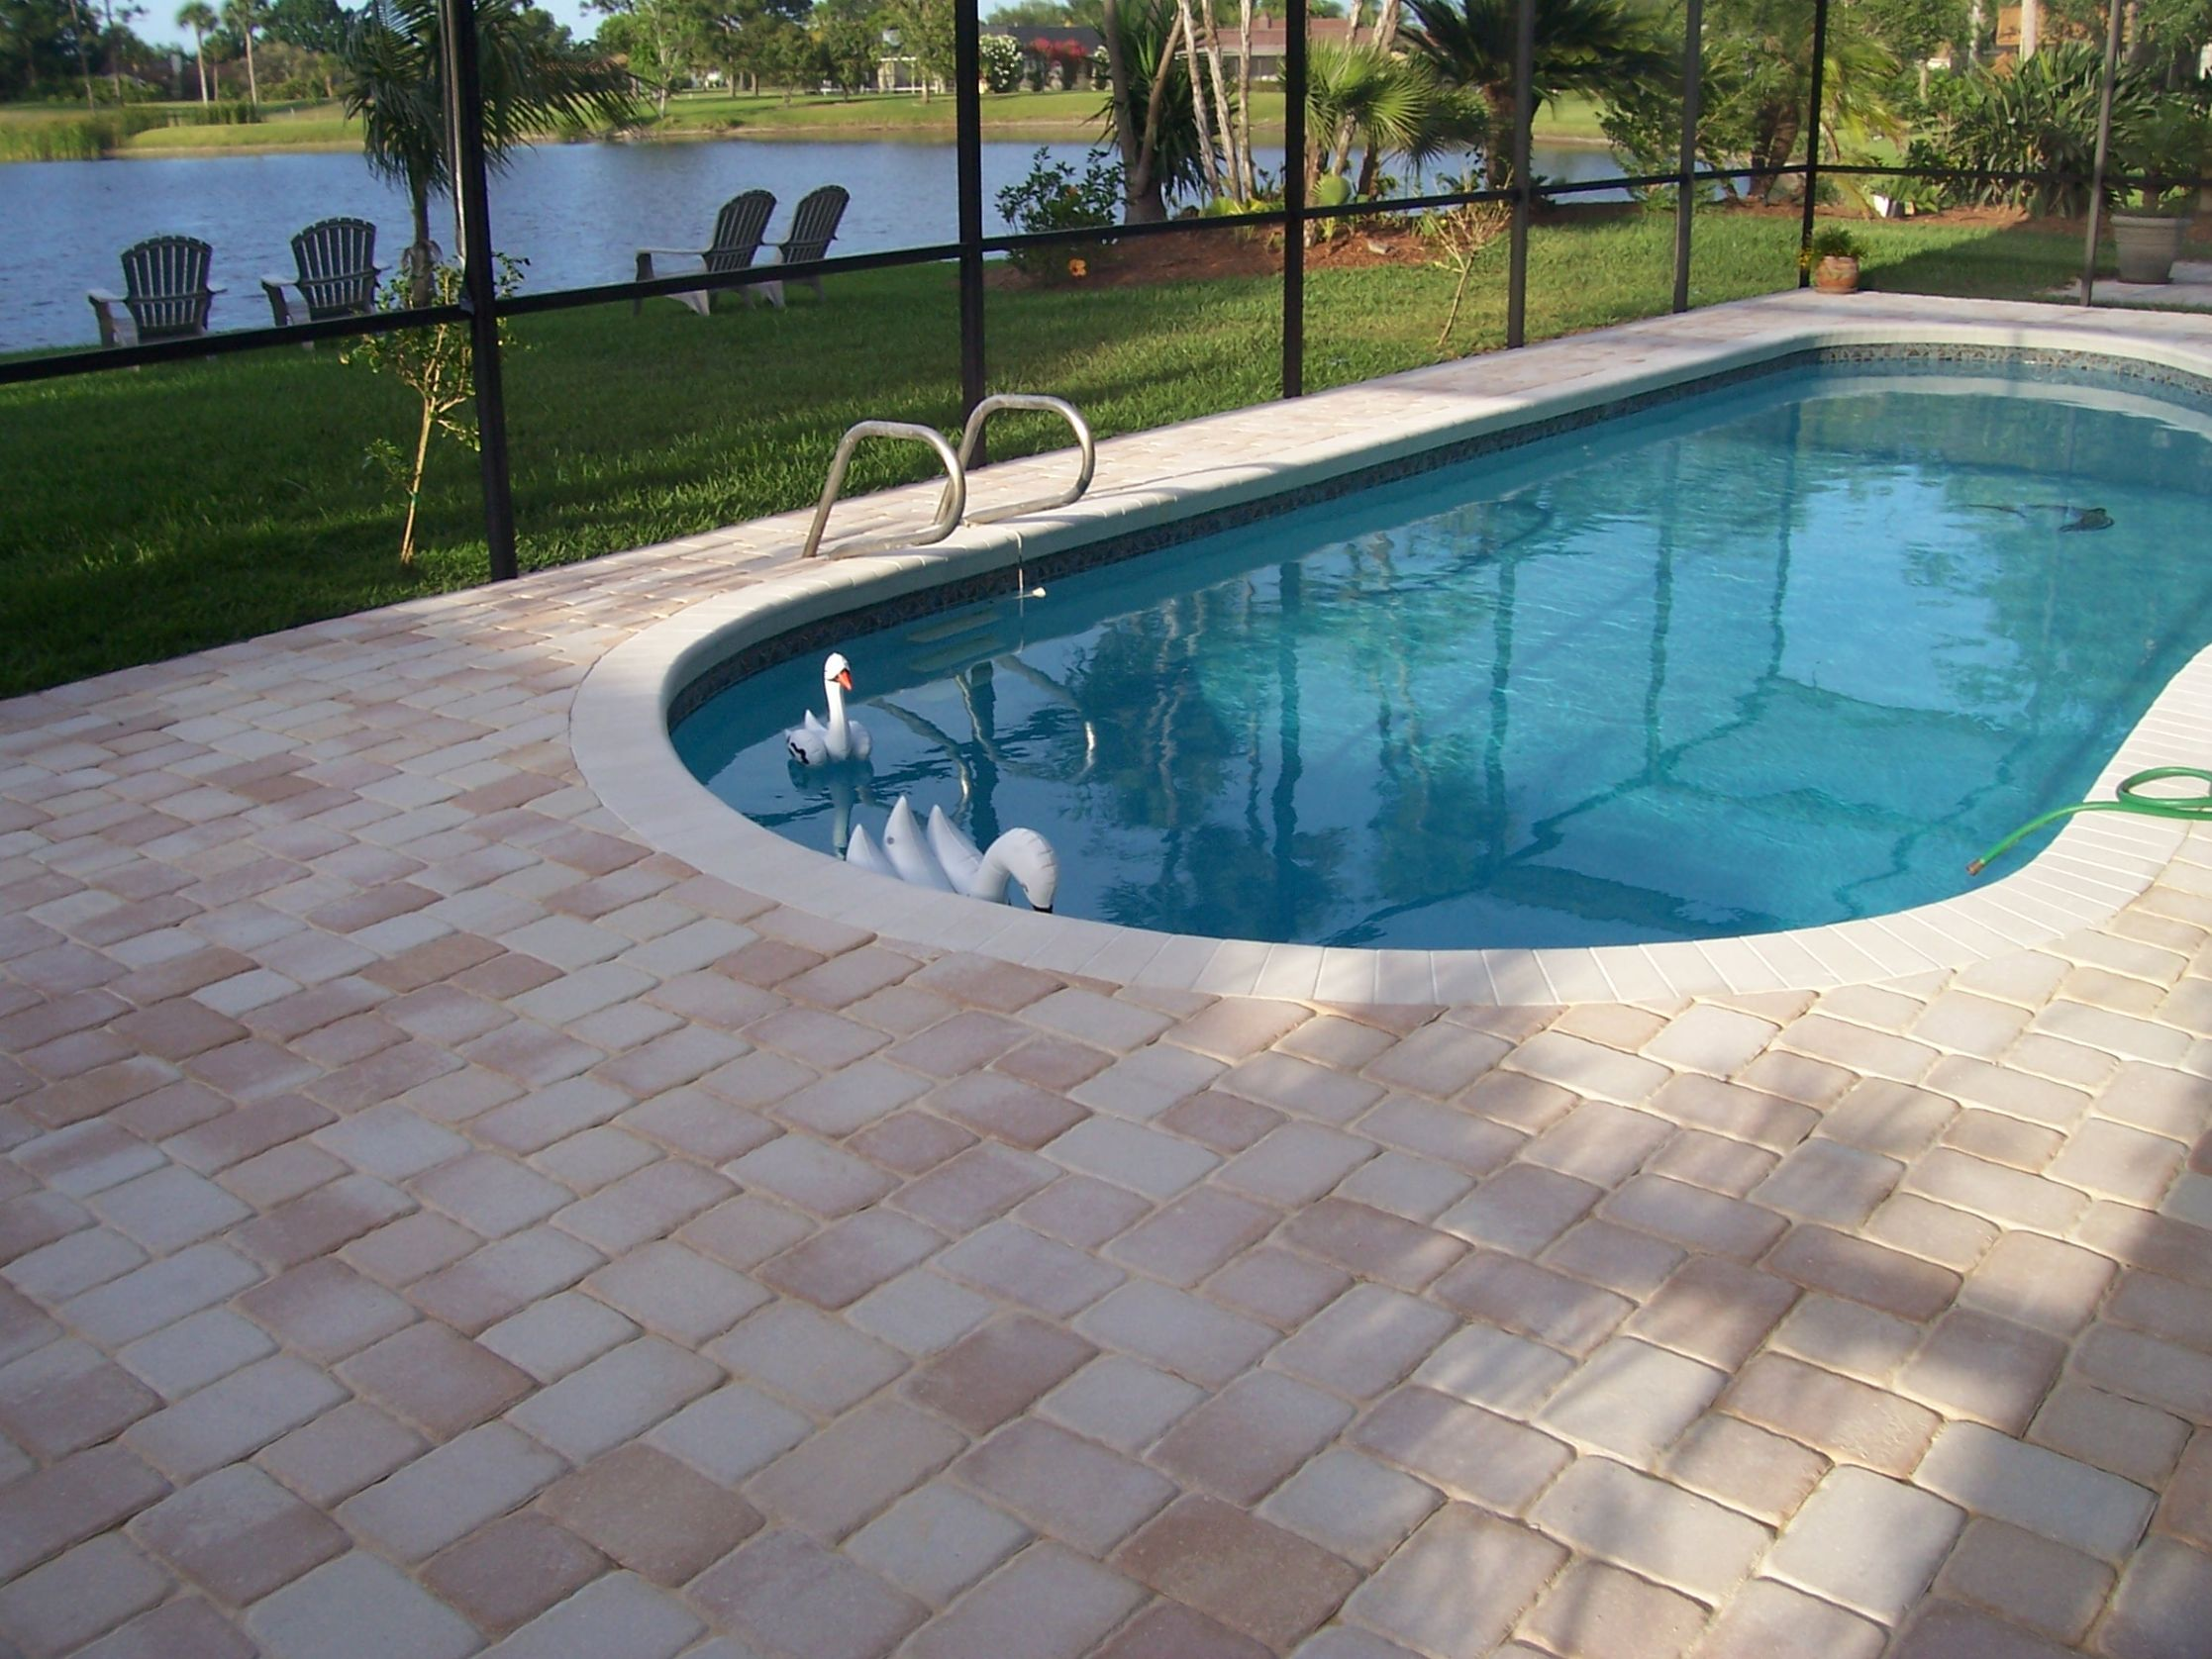 Pool Deck Pavers South Jersey | Pool Paver Installation NJ - pool paving ideas